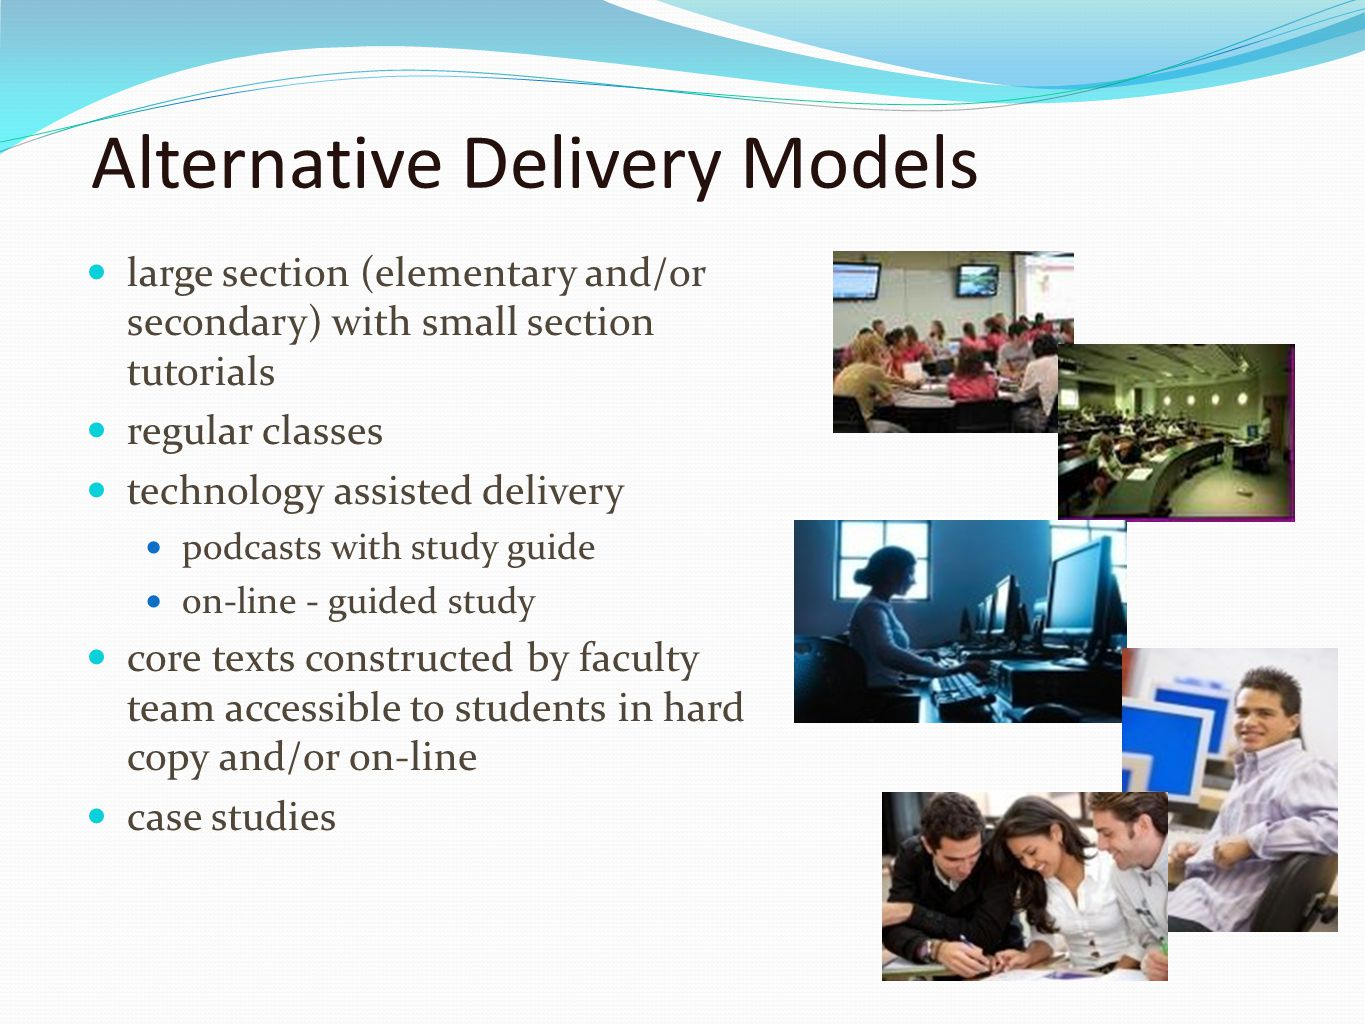 Alternative Delivery Models large section (elementary and/or secondary) with small section tutorials regular classes technology assisted delivery podcasts with study guide on-line - guided study core texts constructed by faculty team accessible to students in hard copy and/or on-line case studies